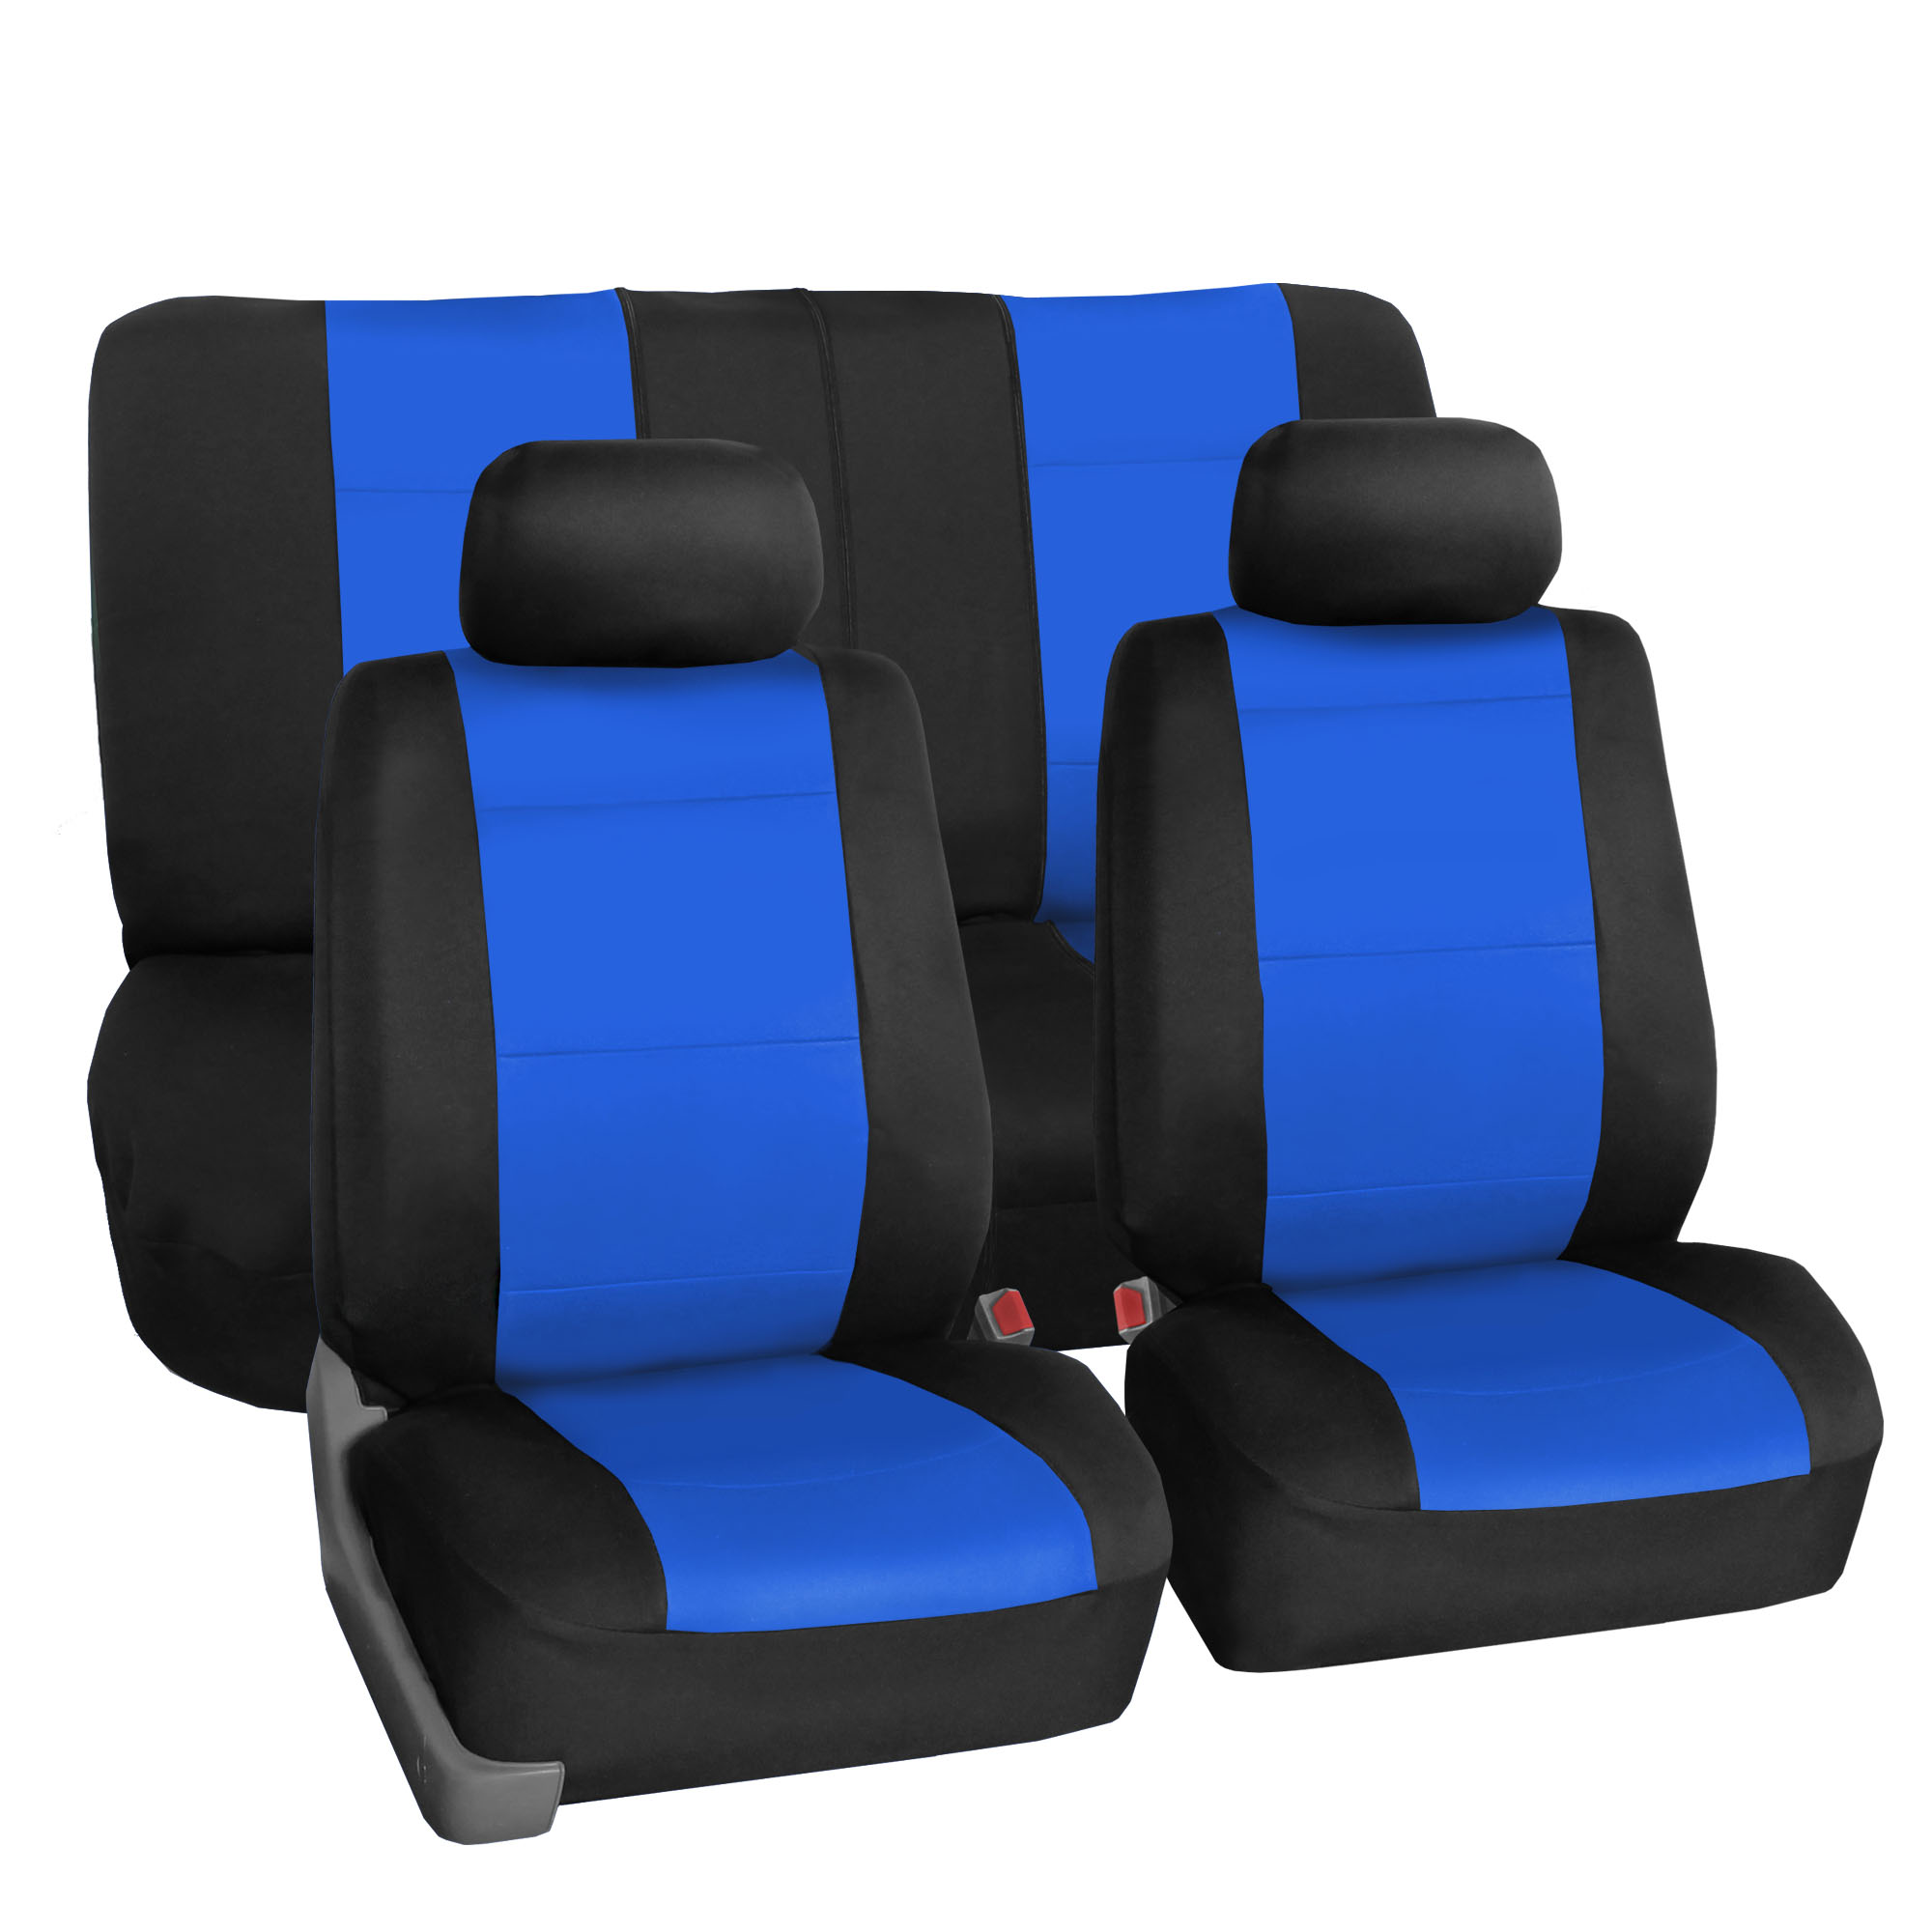 chair covers waterproof how to make a mat jeep seat ebay autos post